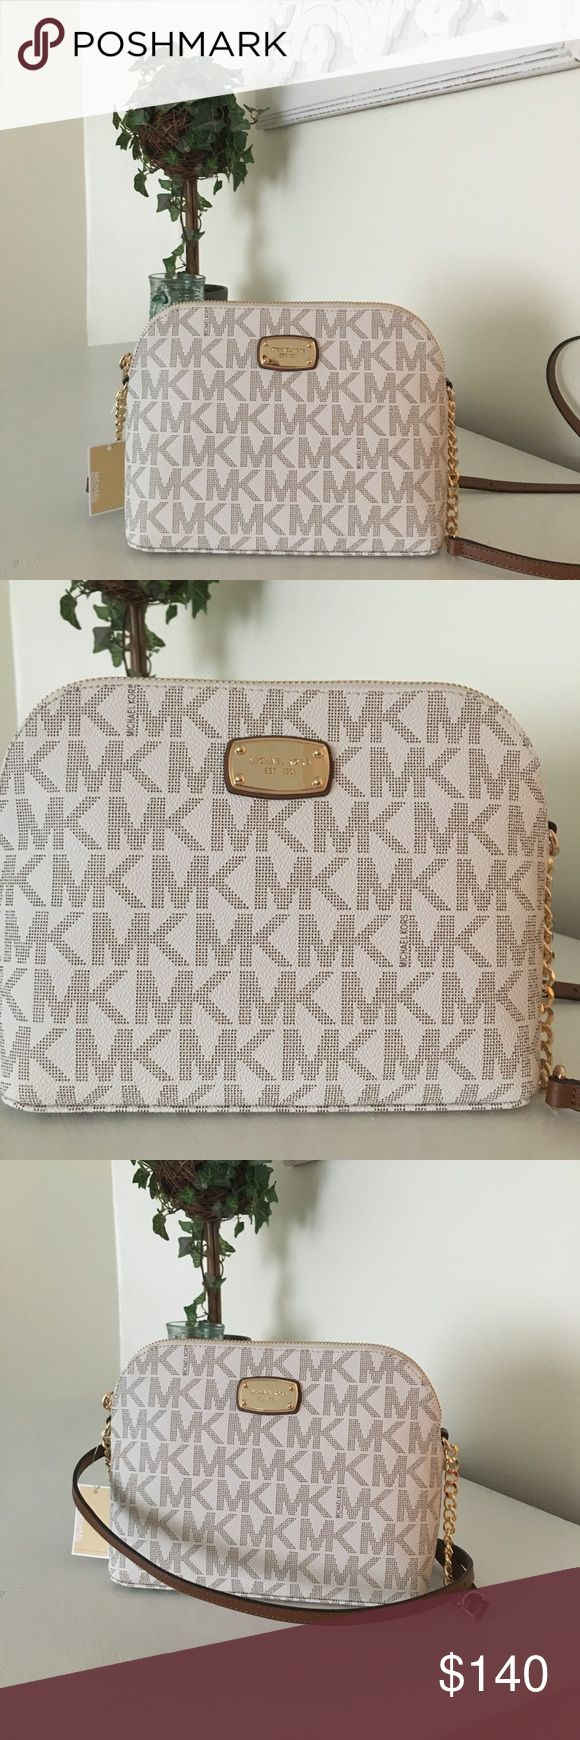 ⭐️NWT Michael Kors ⭐️Large Crossbody Perfect purse for spring! Big enough to fit all your things but small enough to take anywhere Michael Kors Bags Crossbody Bags